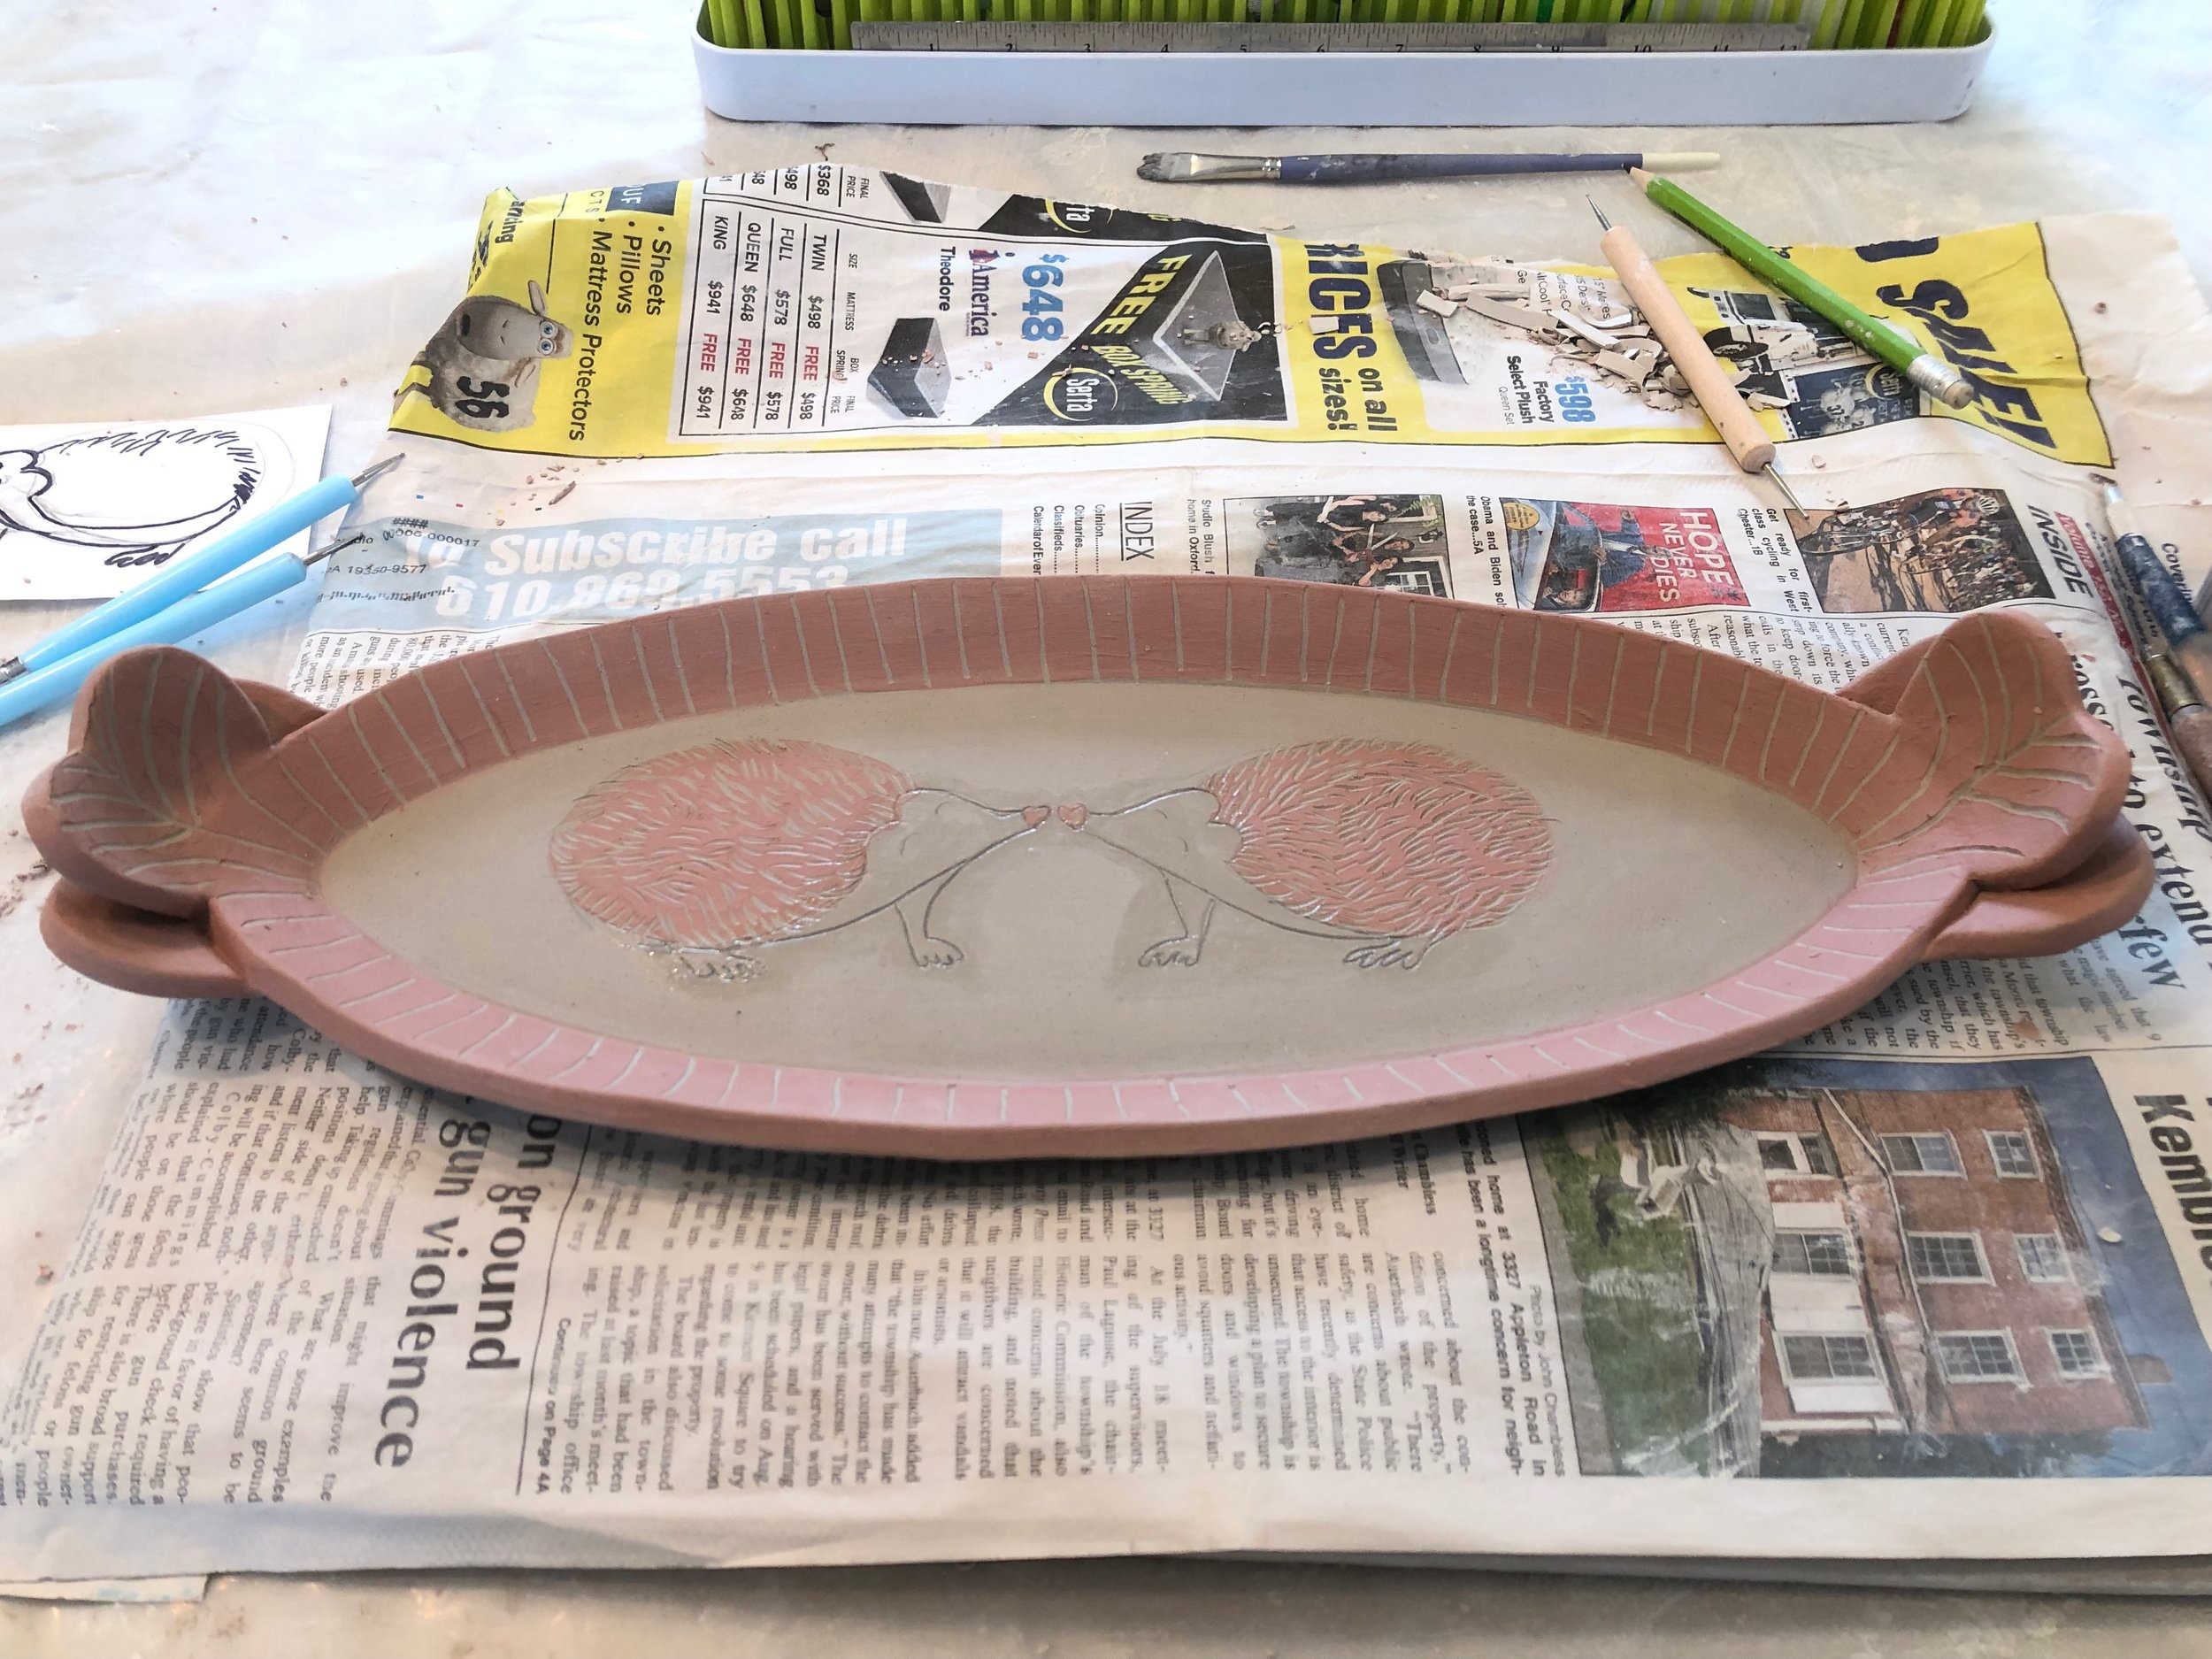 it's sgraffito designHere is the whole tray finished with